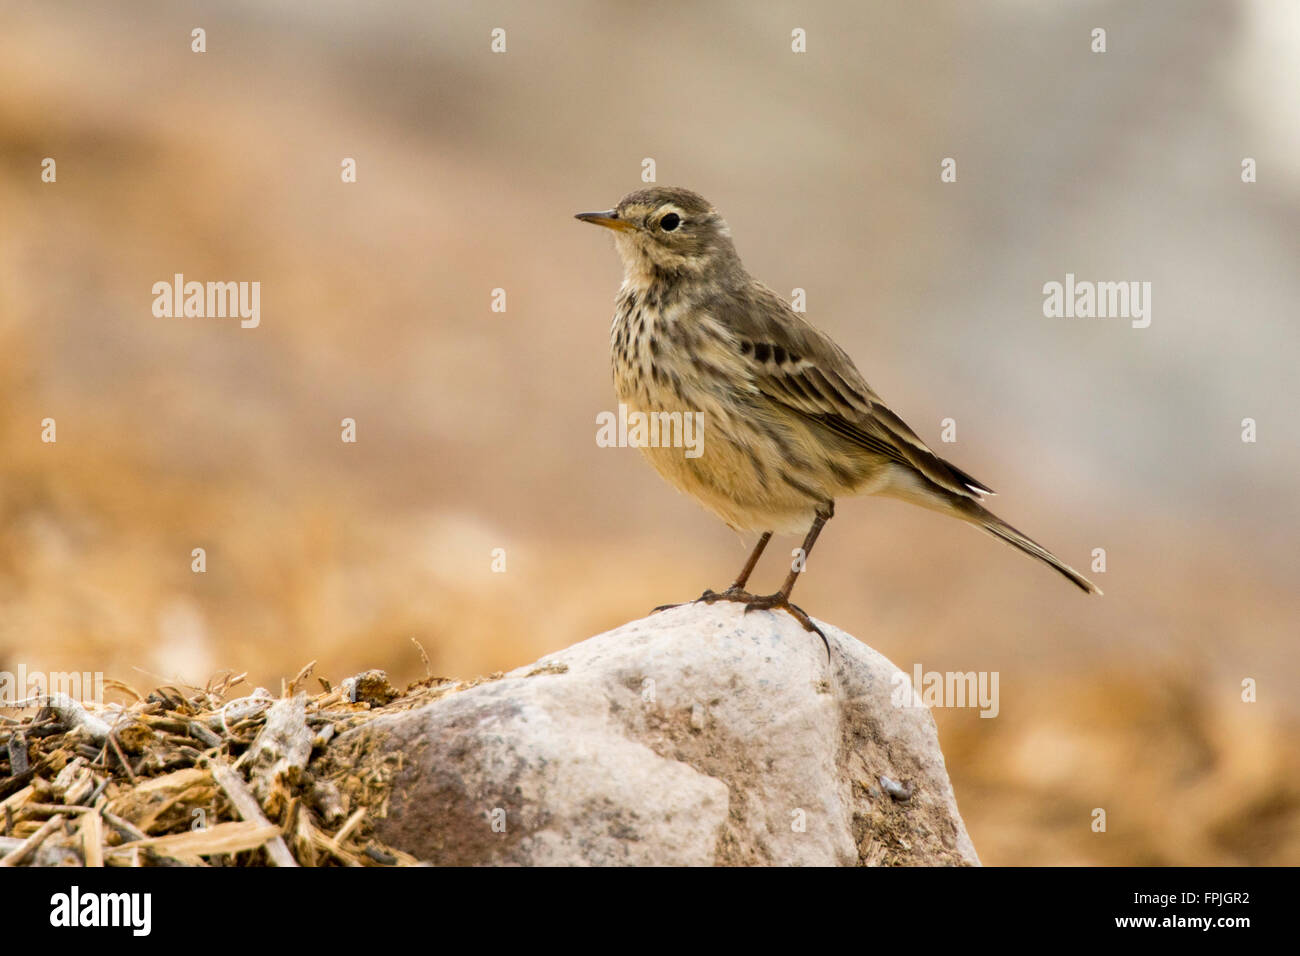 American Pipit  Anthus rubescens  Henderson, Nevada, United States 4 December     Adult nonbreeding plumage.    - Stock Image